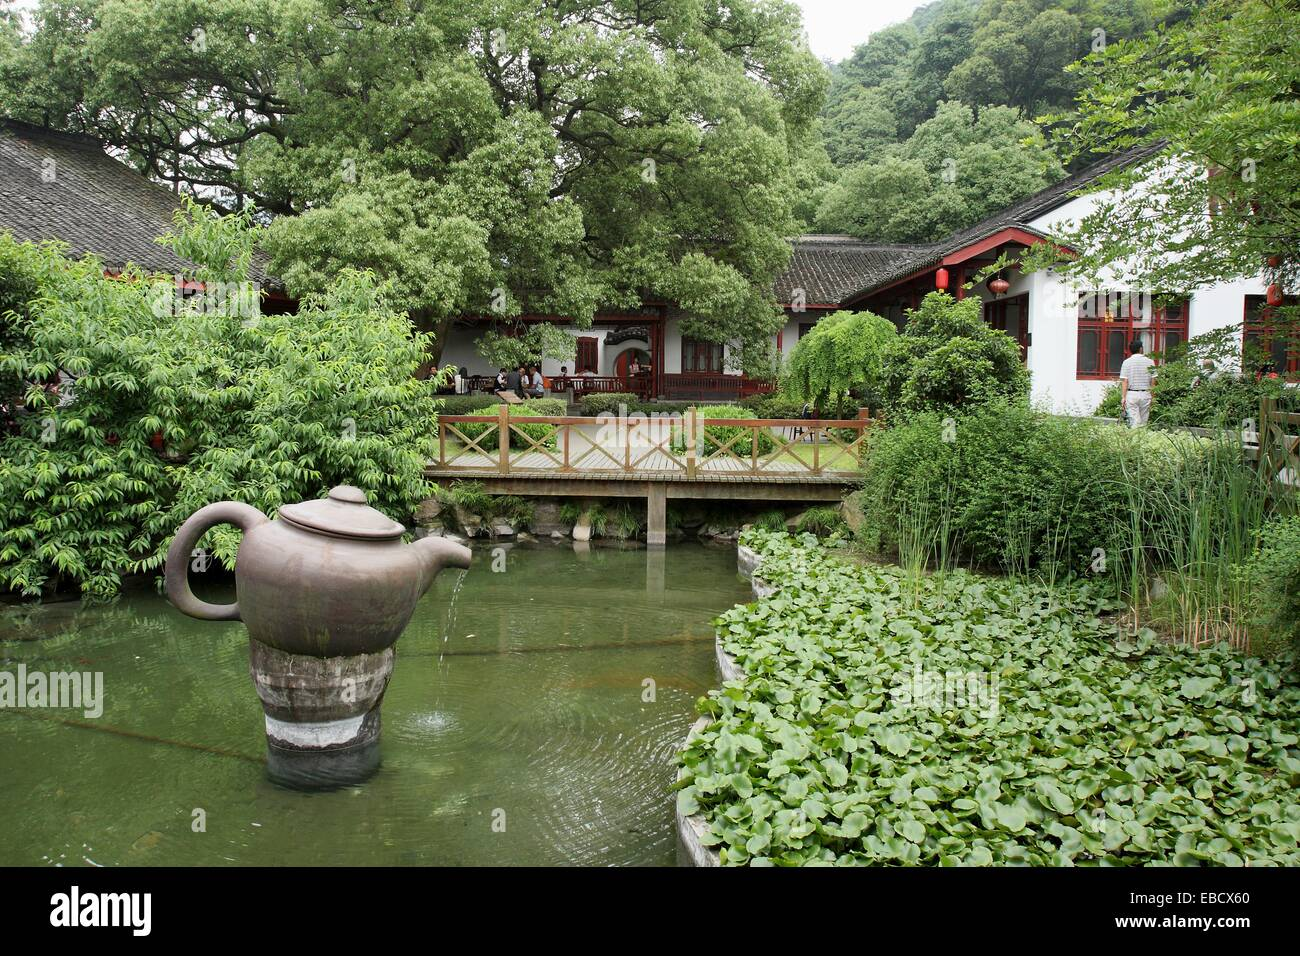 Chinese garden decorate with big teapot in meddle of the pond, china ...